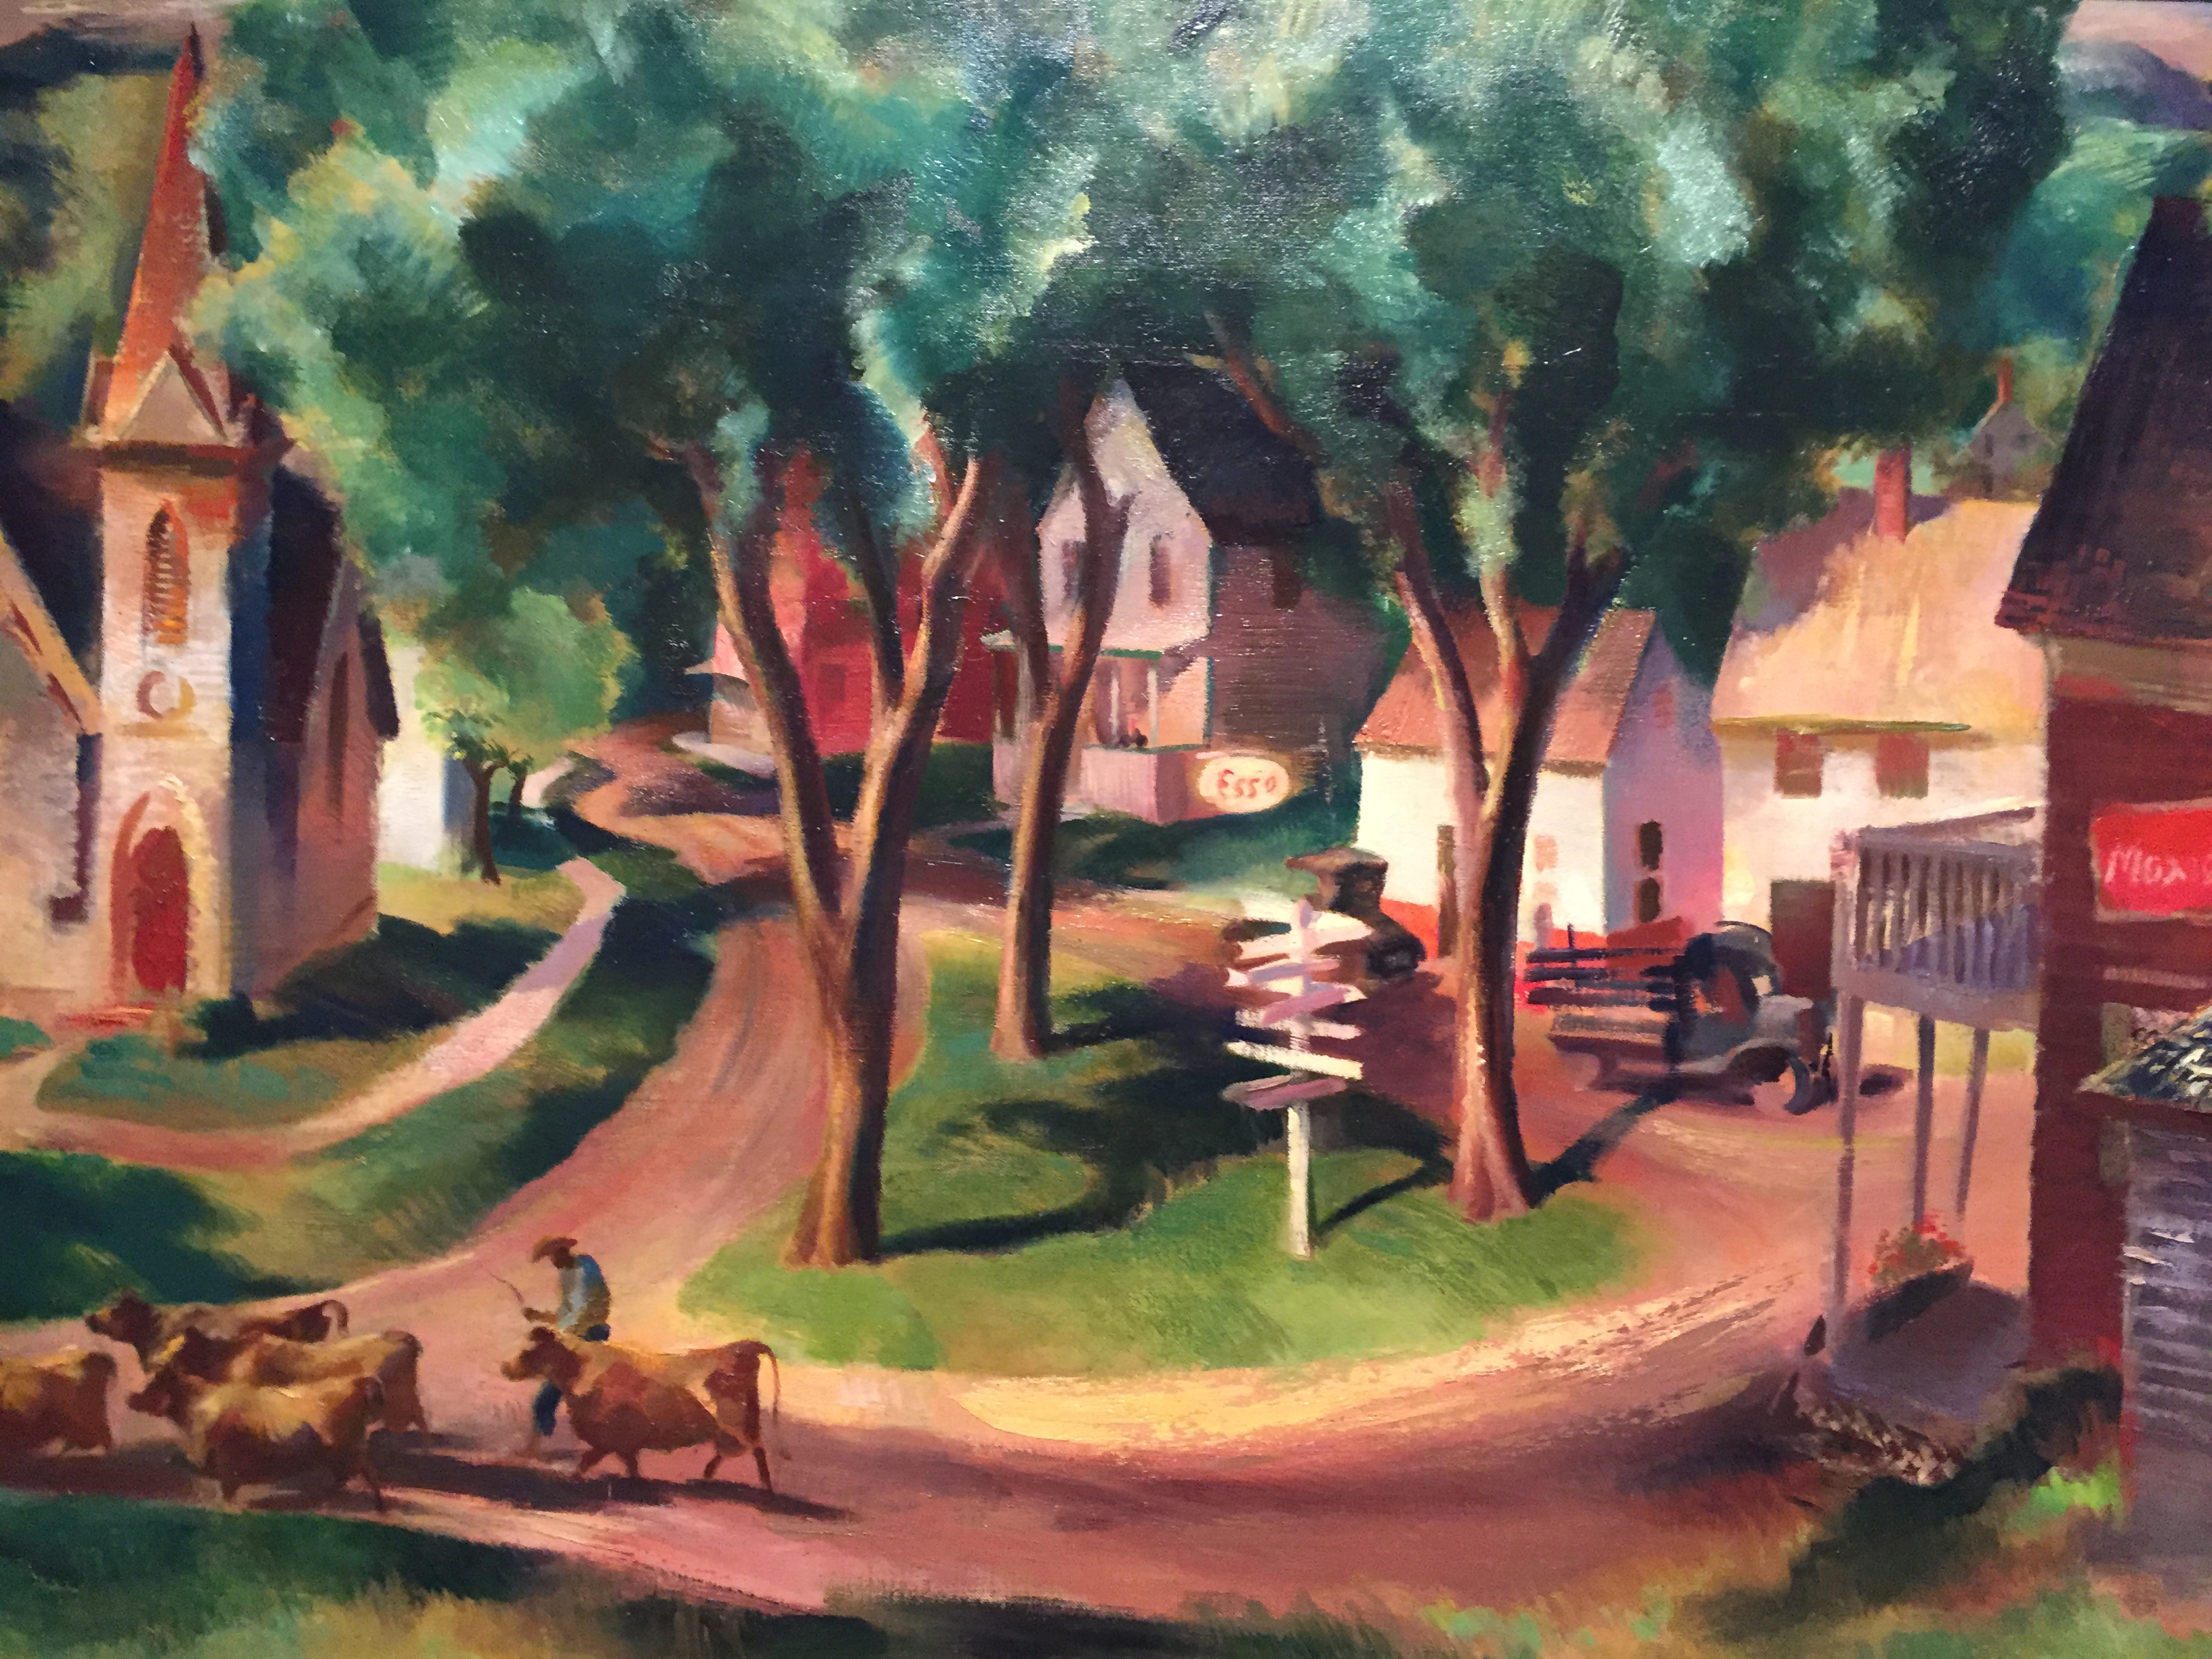 Esso a painting by barse miller